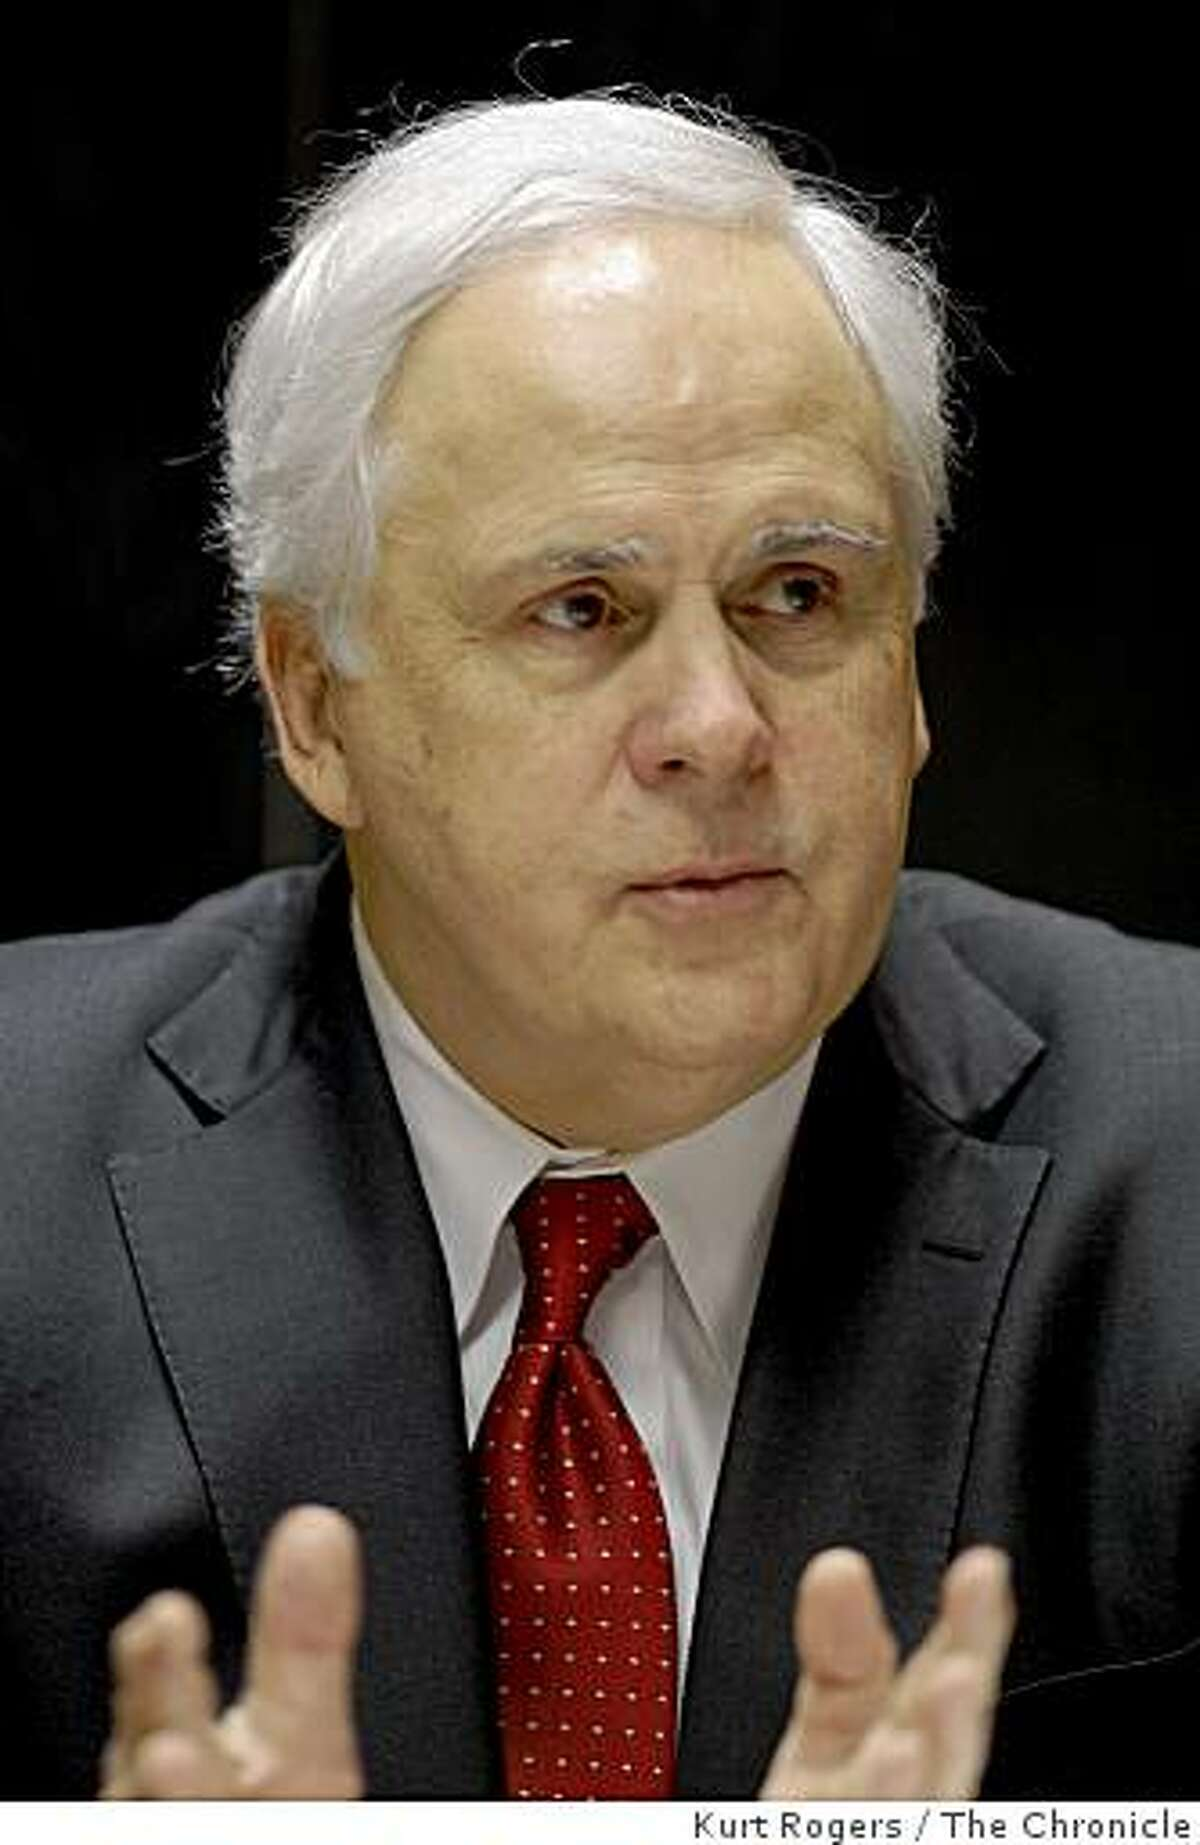 Frederick W. Smith, the founder, chairman, president and CEO of FedEx.. on Wednesday Feb 11, 2009 in San Francisco , Calif